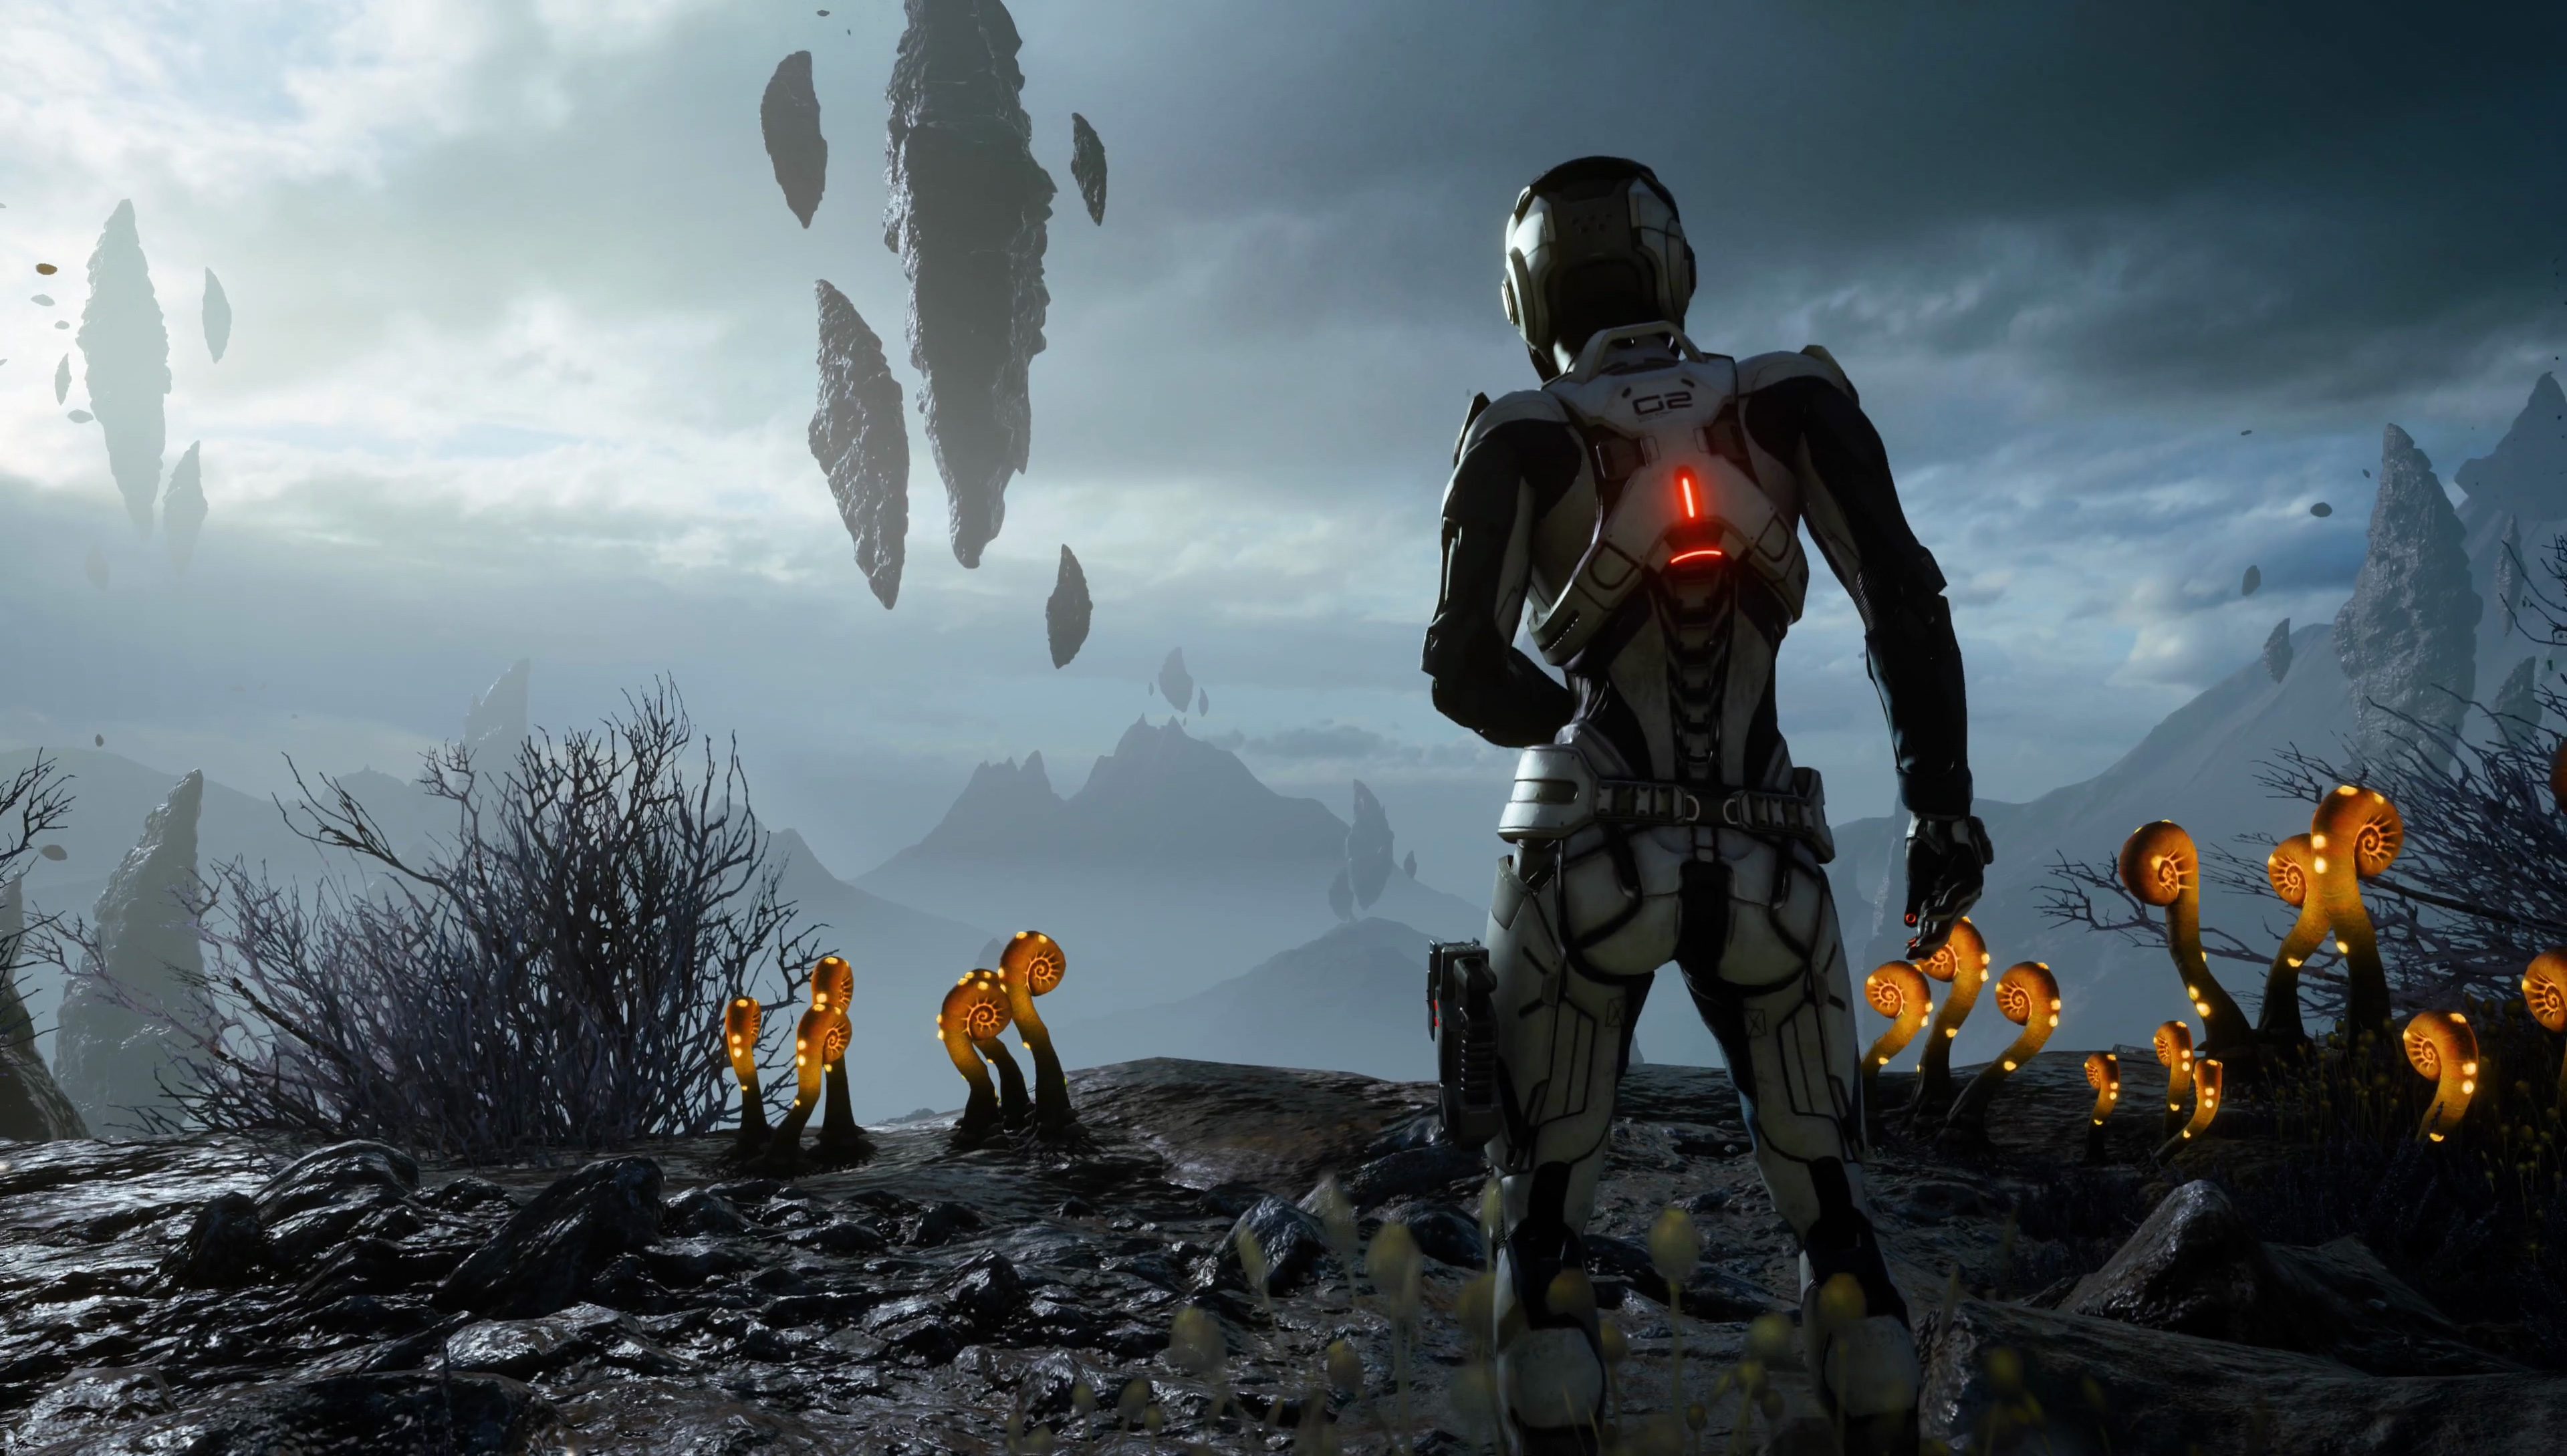 Mass Effect Andromeda Full Hd 3d Wallpapers: Mass Effect Andromeda HD Game, HD Games, 4k Wallpapers